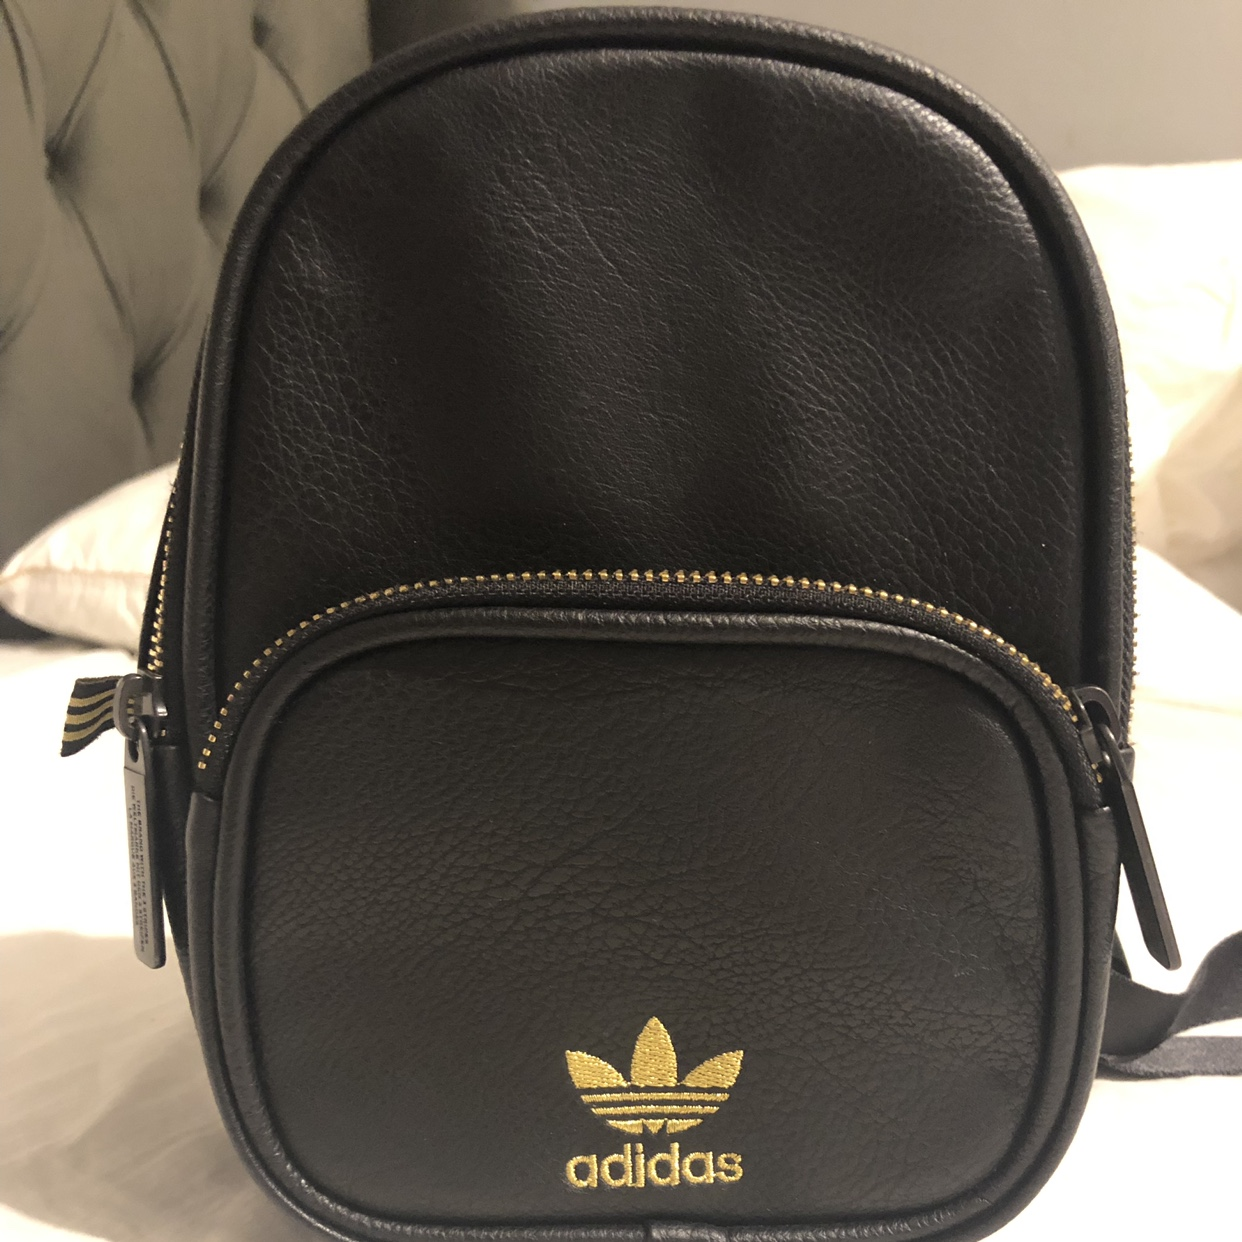 Adidas mini backpack Leather Black and Gold Worn a Depop